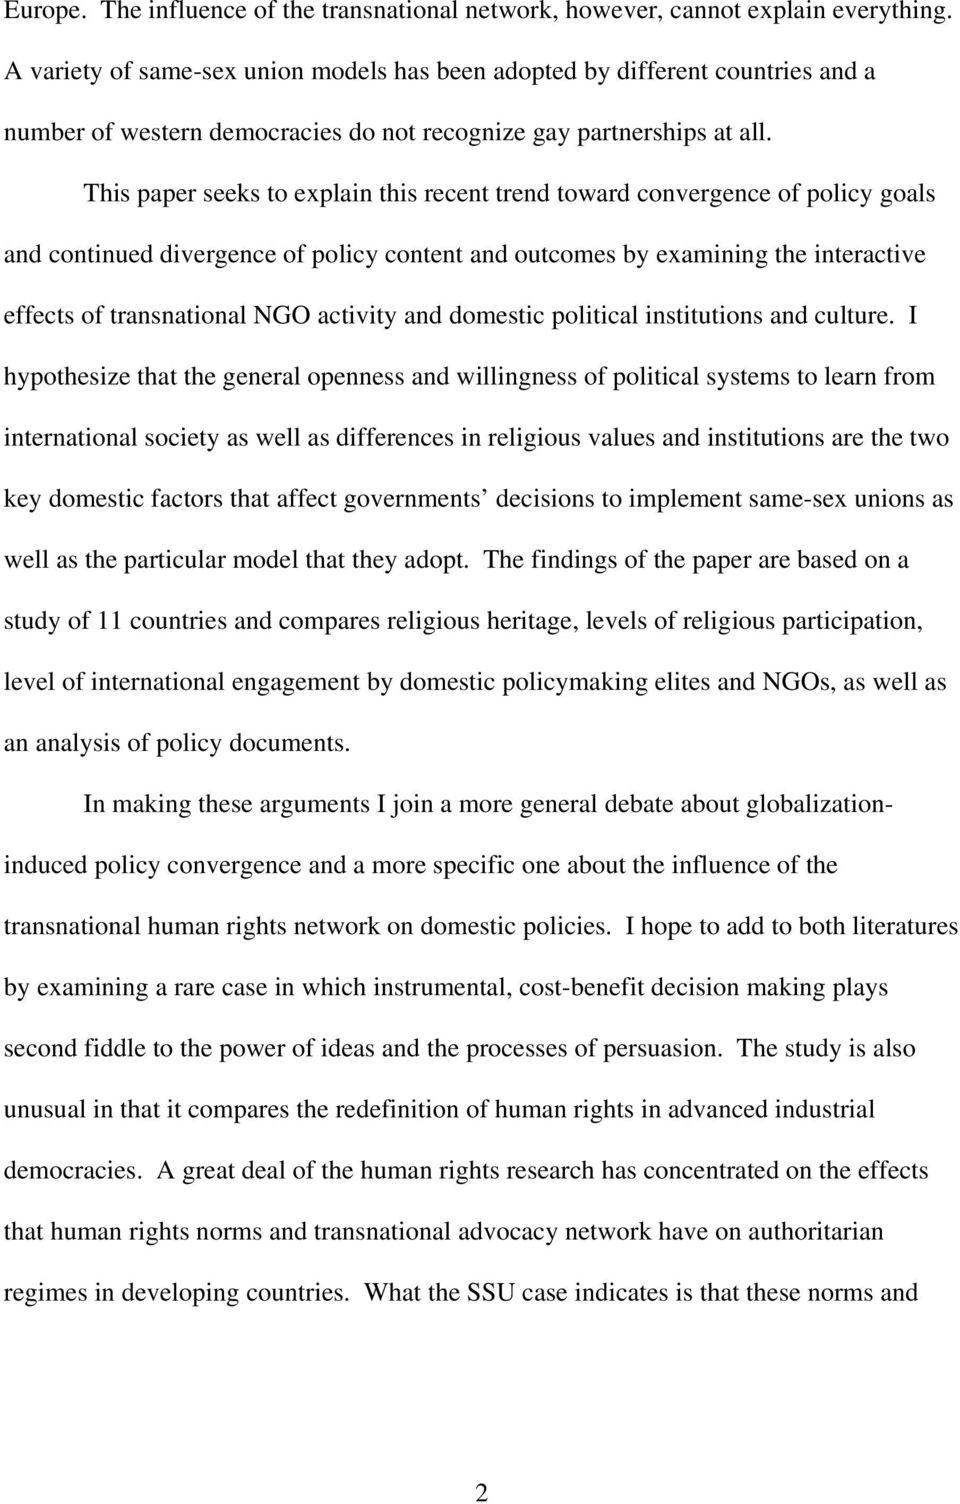 This paper seeks to explain this recent trend toward convergence of policy goals and continued divergence of policy content and outcomes by examining the interactive effects of transnational NGO